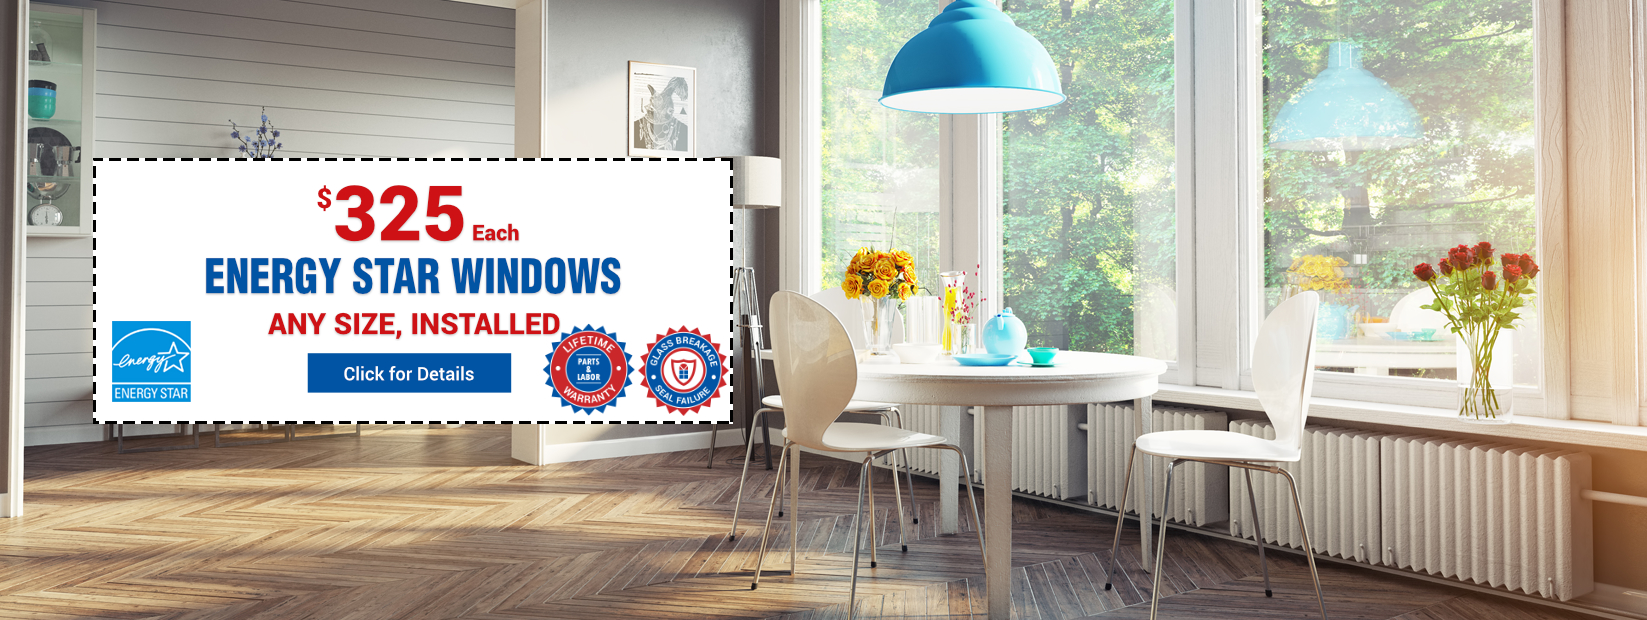 Energy Star Windows